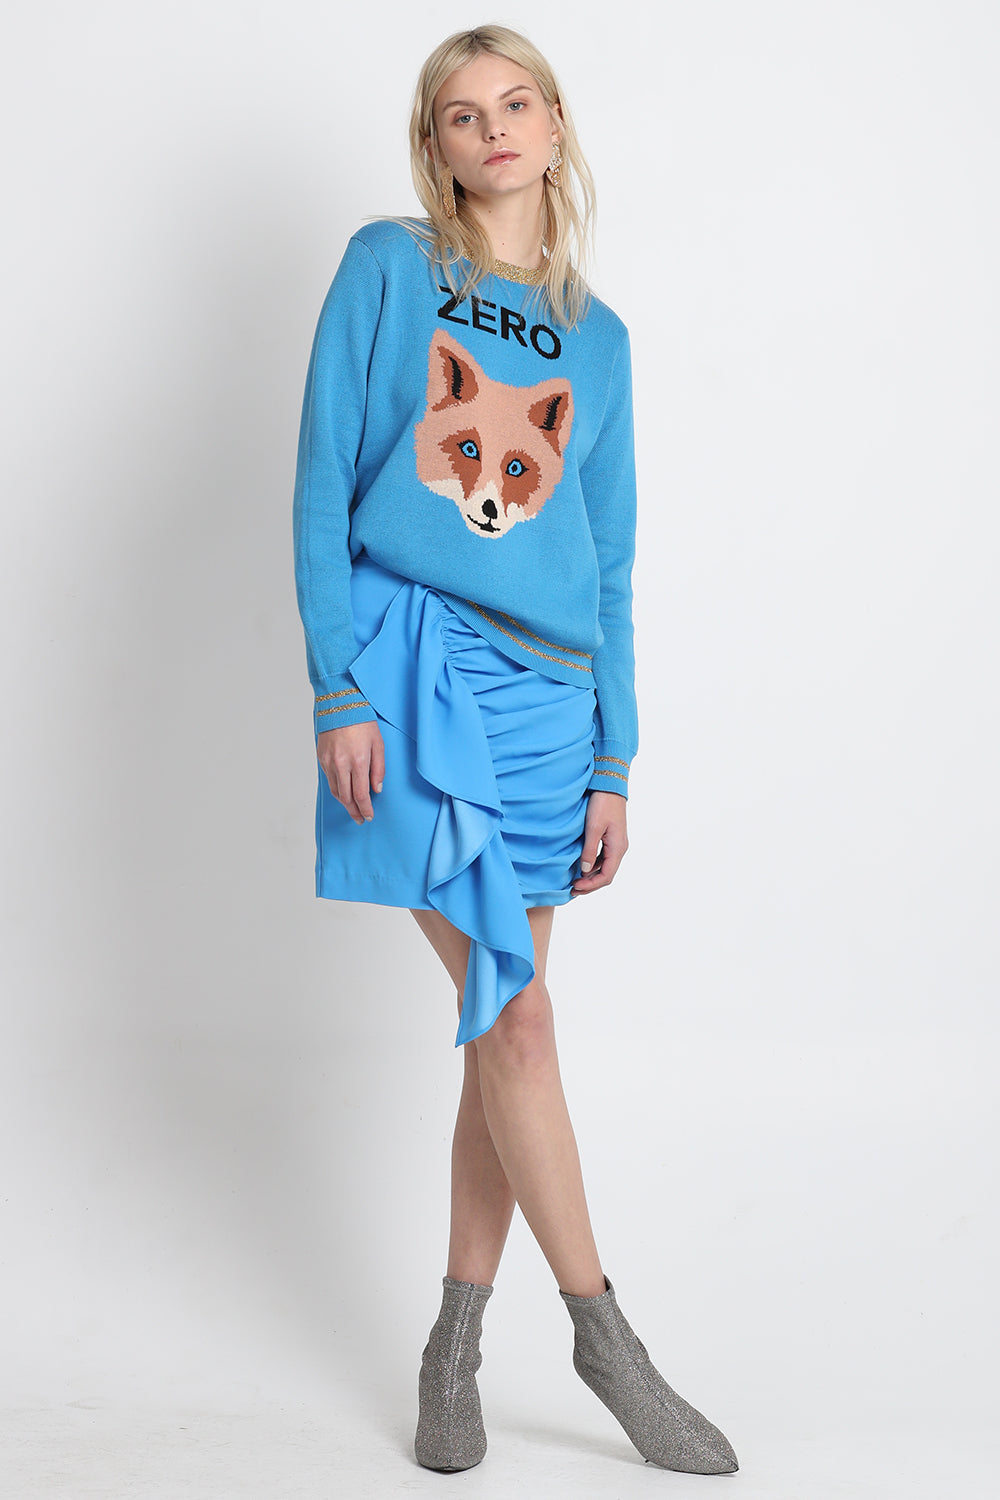 Zero Fox Sweater